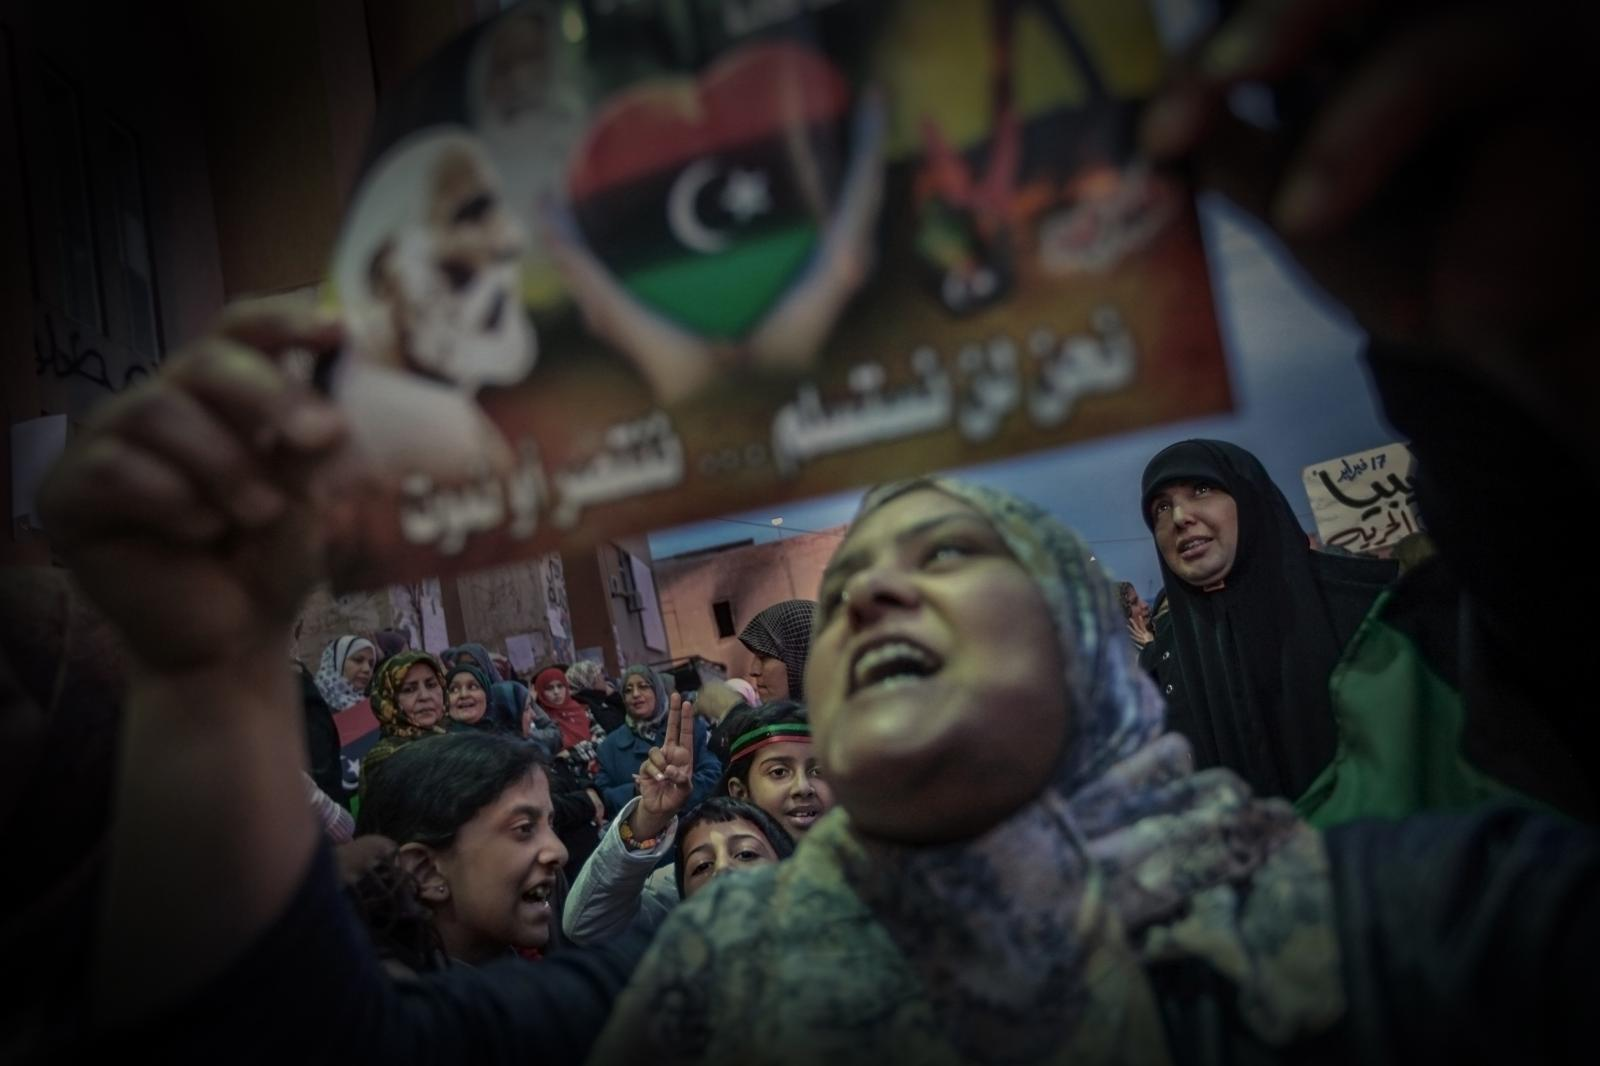 Protests in Bengasi with the image of Omar Al-Mujtar, hero of Libyan independence, call for international intervention and the imposition of a no-fly zone, just before Gaddafi's troops arrived at the gates of the besieged city and were stopped by French aircraft (2011).